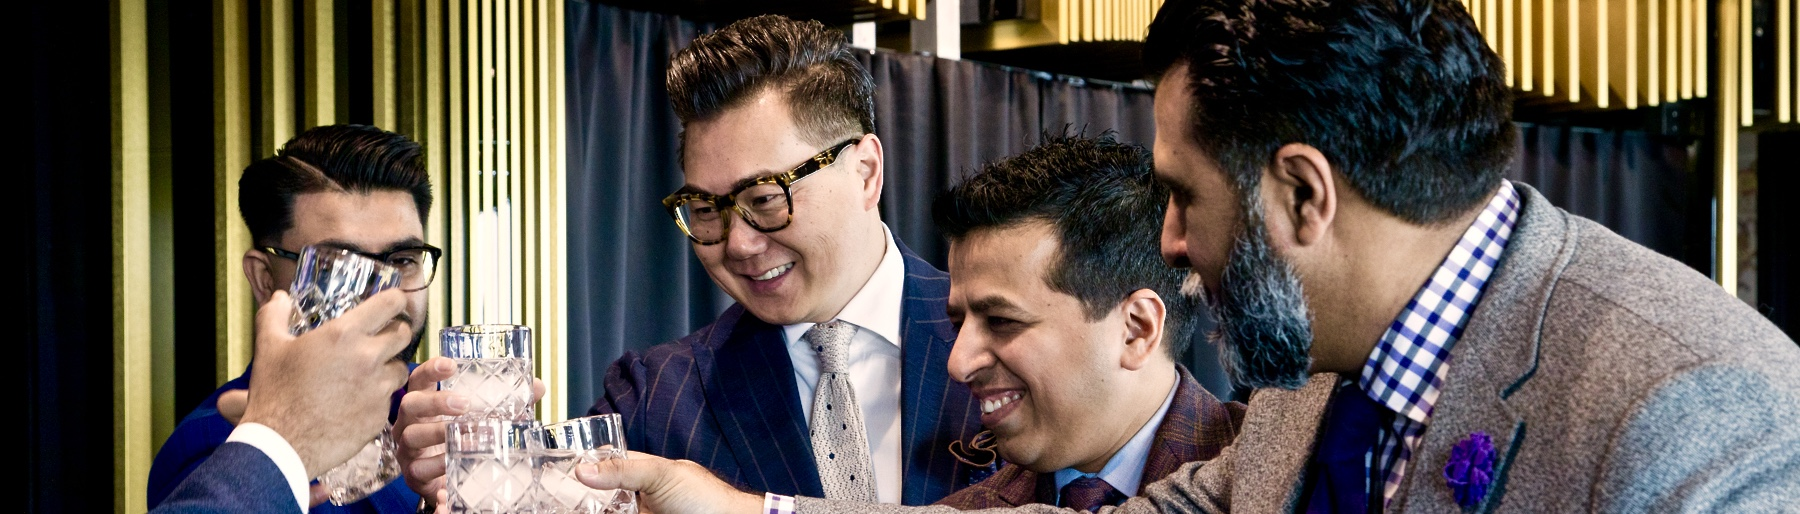 About Custom Bespoke Mens Tailor Toronto